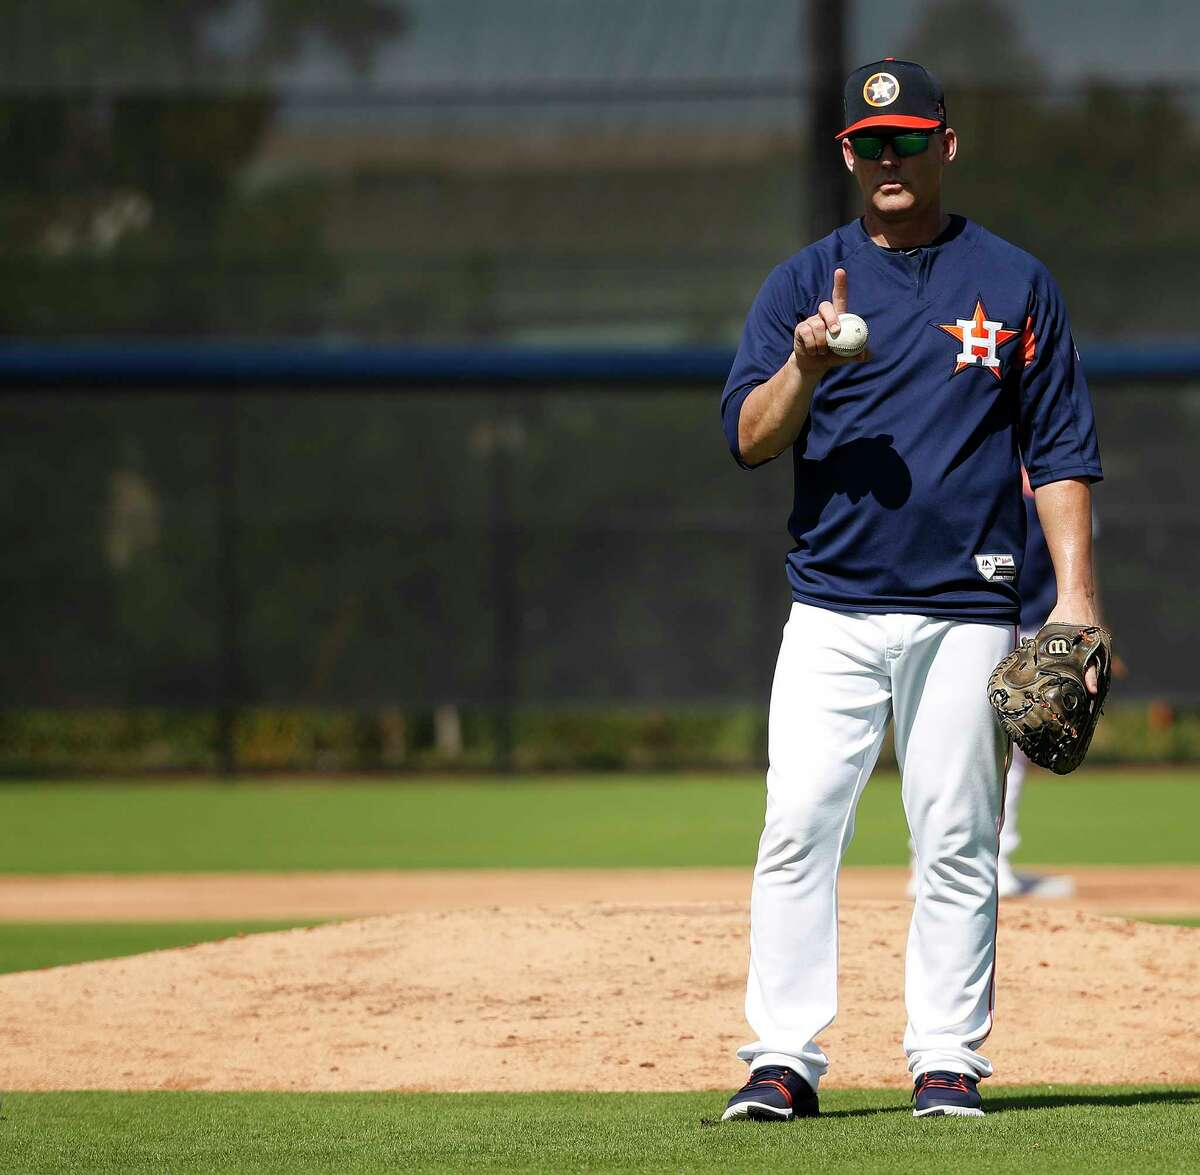 Houston Astros manager A.J. Hinch works with catchers during spring training at The Ballpark of the Palm Beaches, Saturday, Feb. 17, 2018, in West Palm Beach .